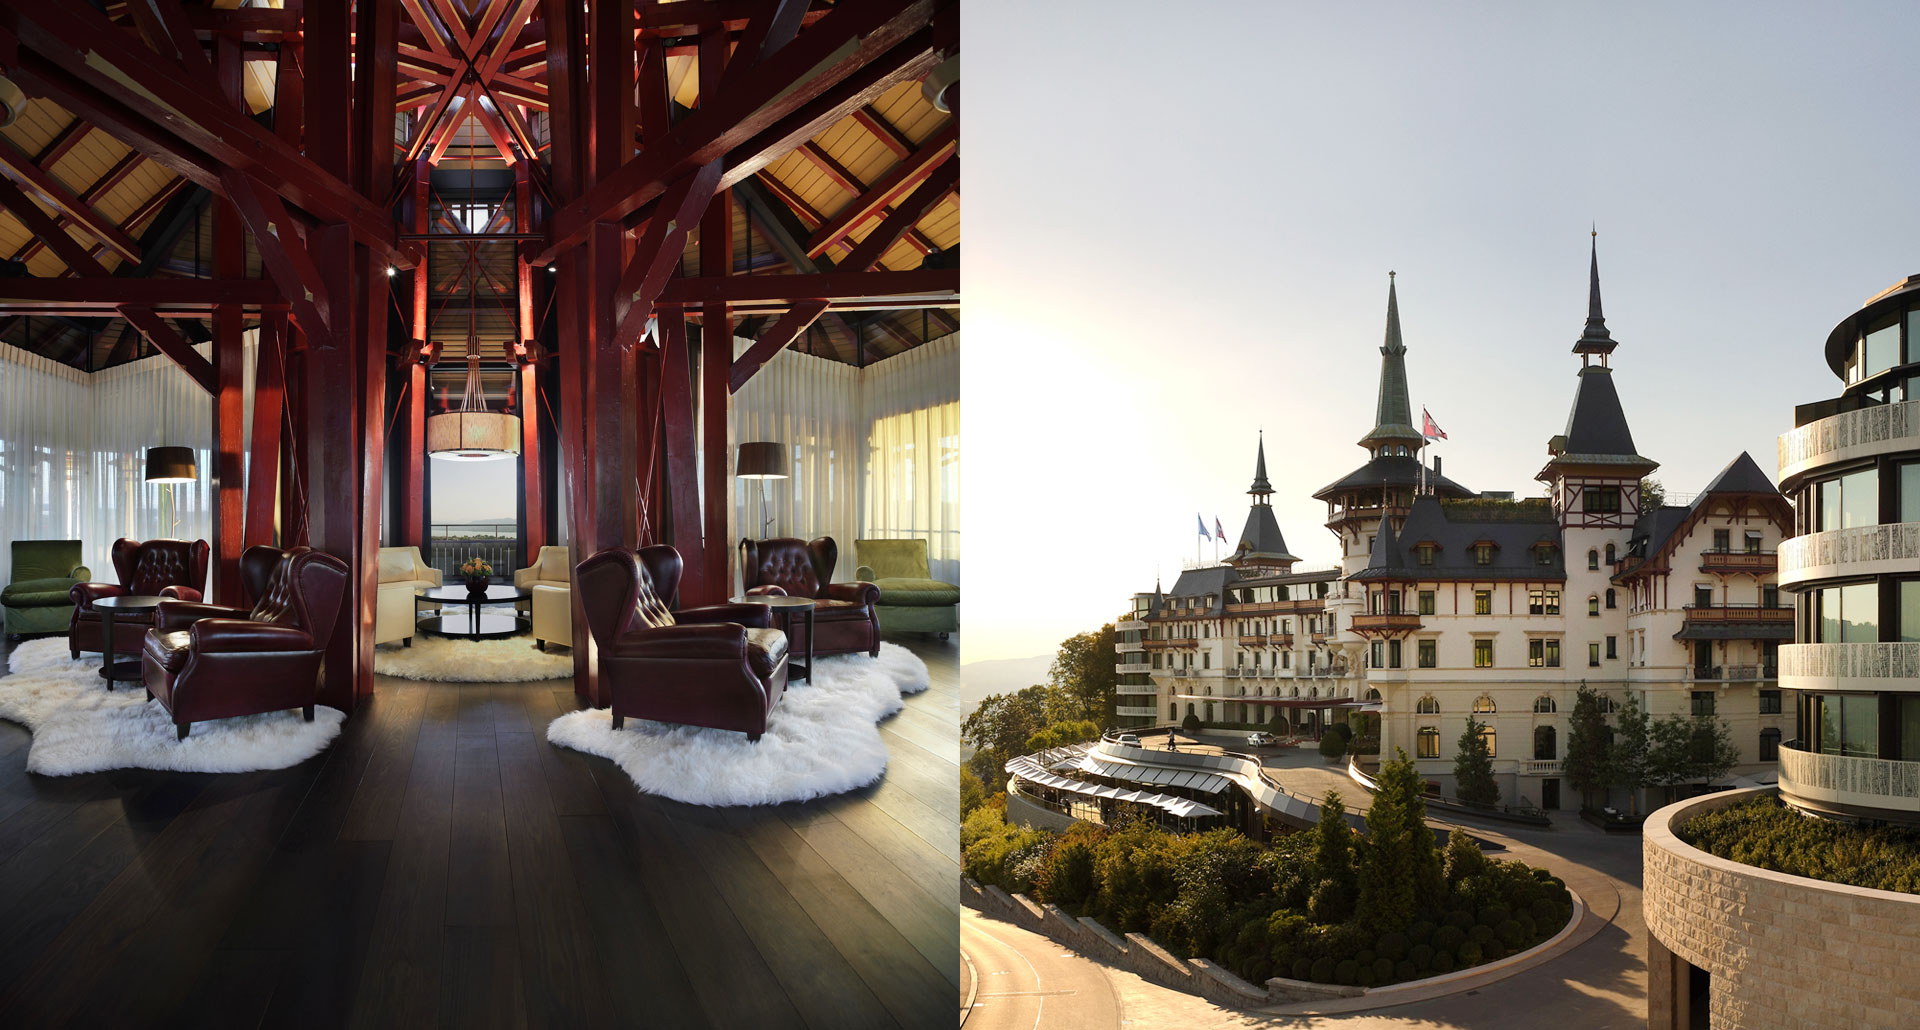 The Dolder Grand boutique hotel in Zurich, Switzerland